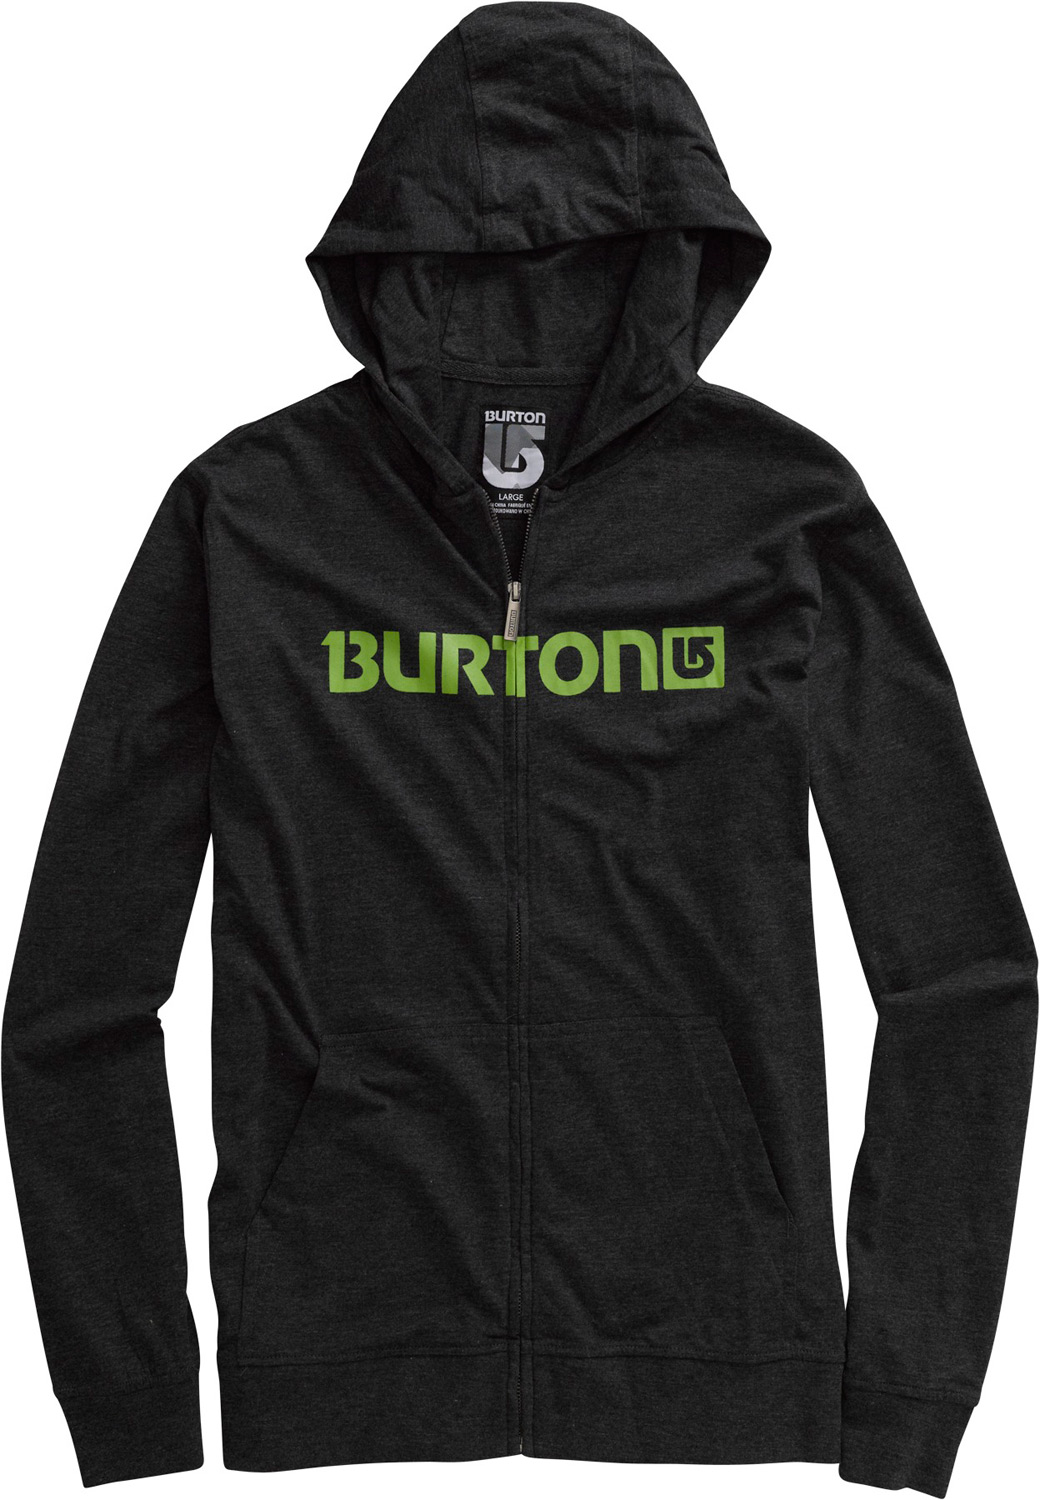 Snowboard Key Features of the Burton Maxwell Jersey Fullzip Hoodie: 60% cotton, 40% polyester, 160g heathered jersey Logo horizontal screen print across chest Sig fit - $33.56